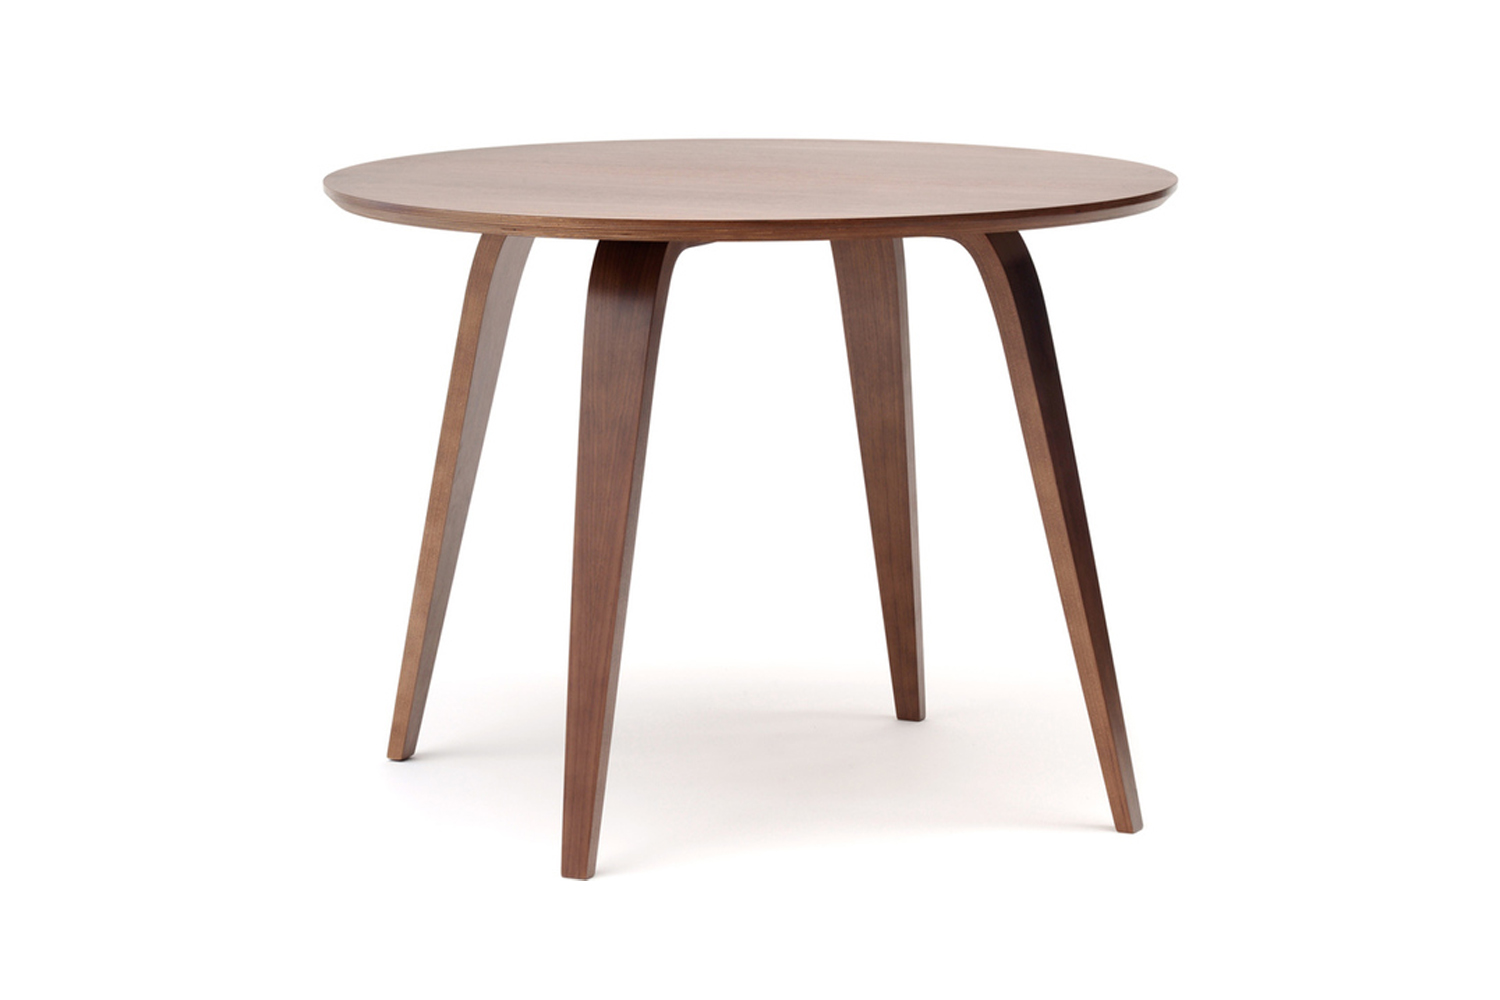 The Norman Cherner Round Table Walnut is $loading=